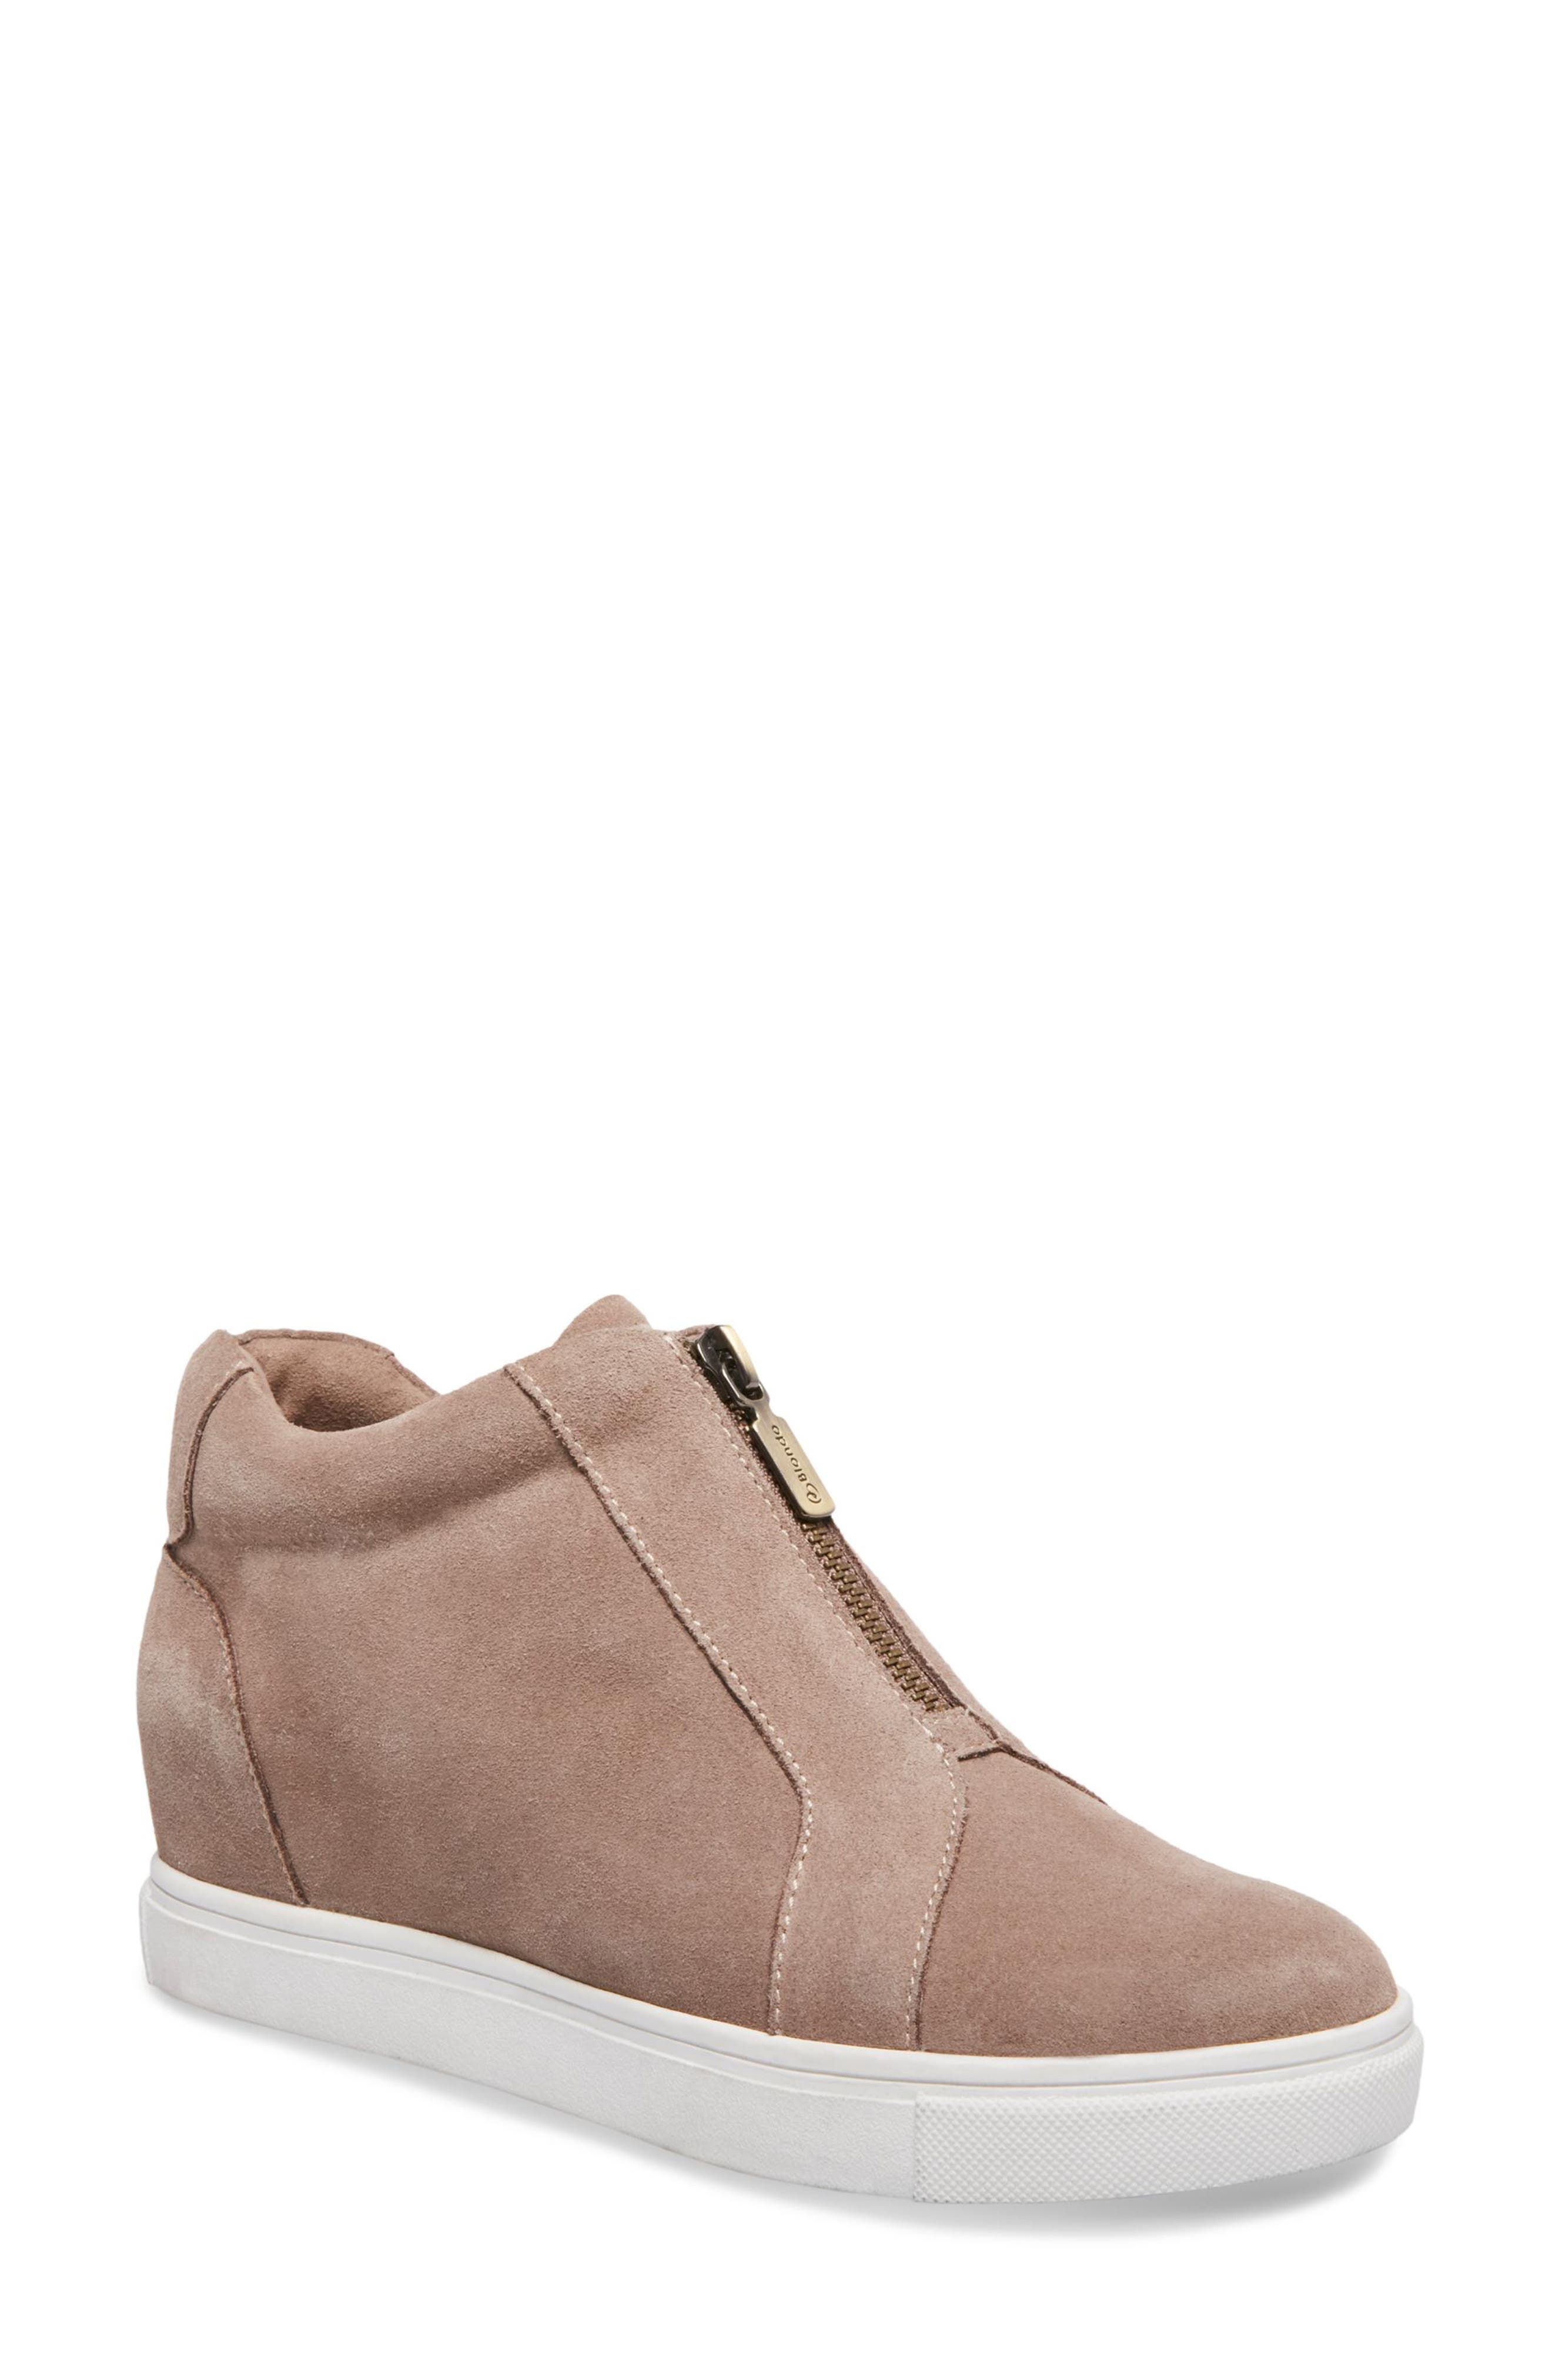 Blondo Glenda Waterproof Sneaker Bootie (Women)